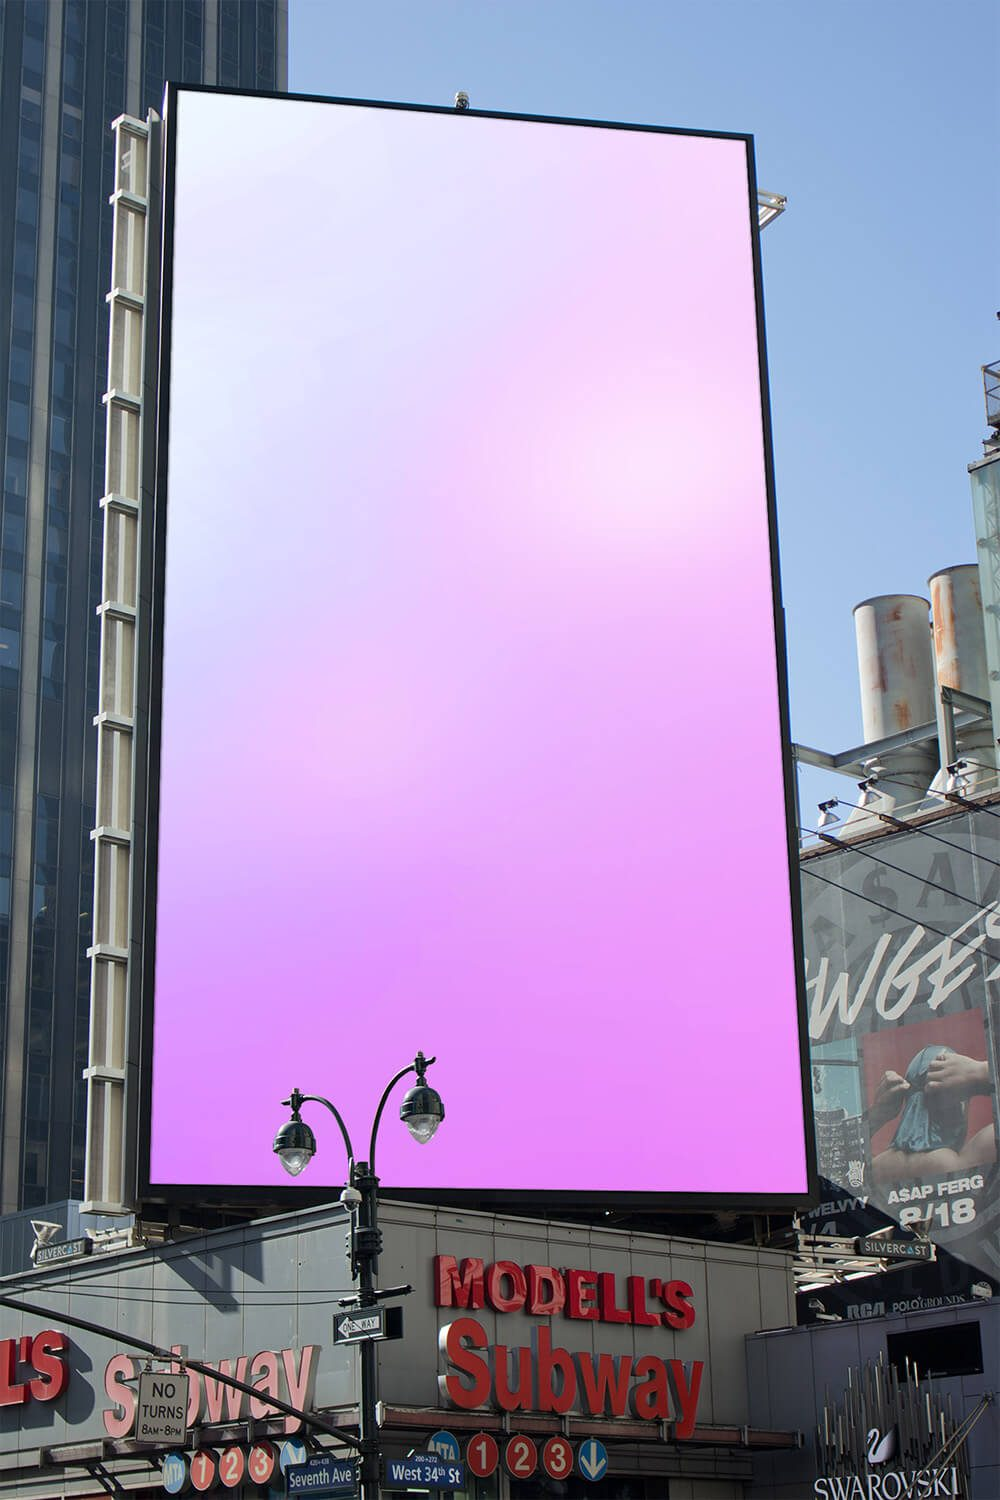 25-tall-billboard-on-busy-street-mockup